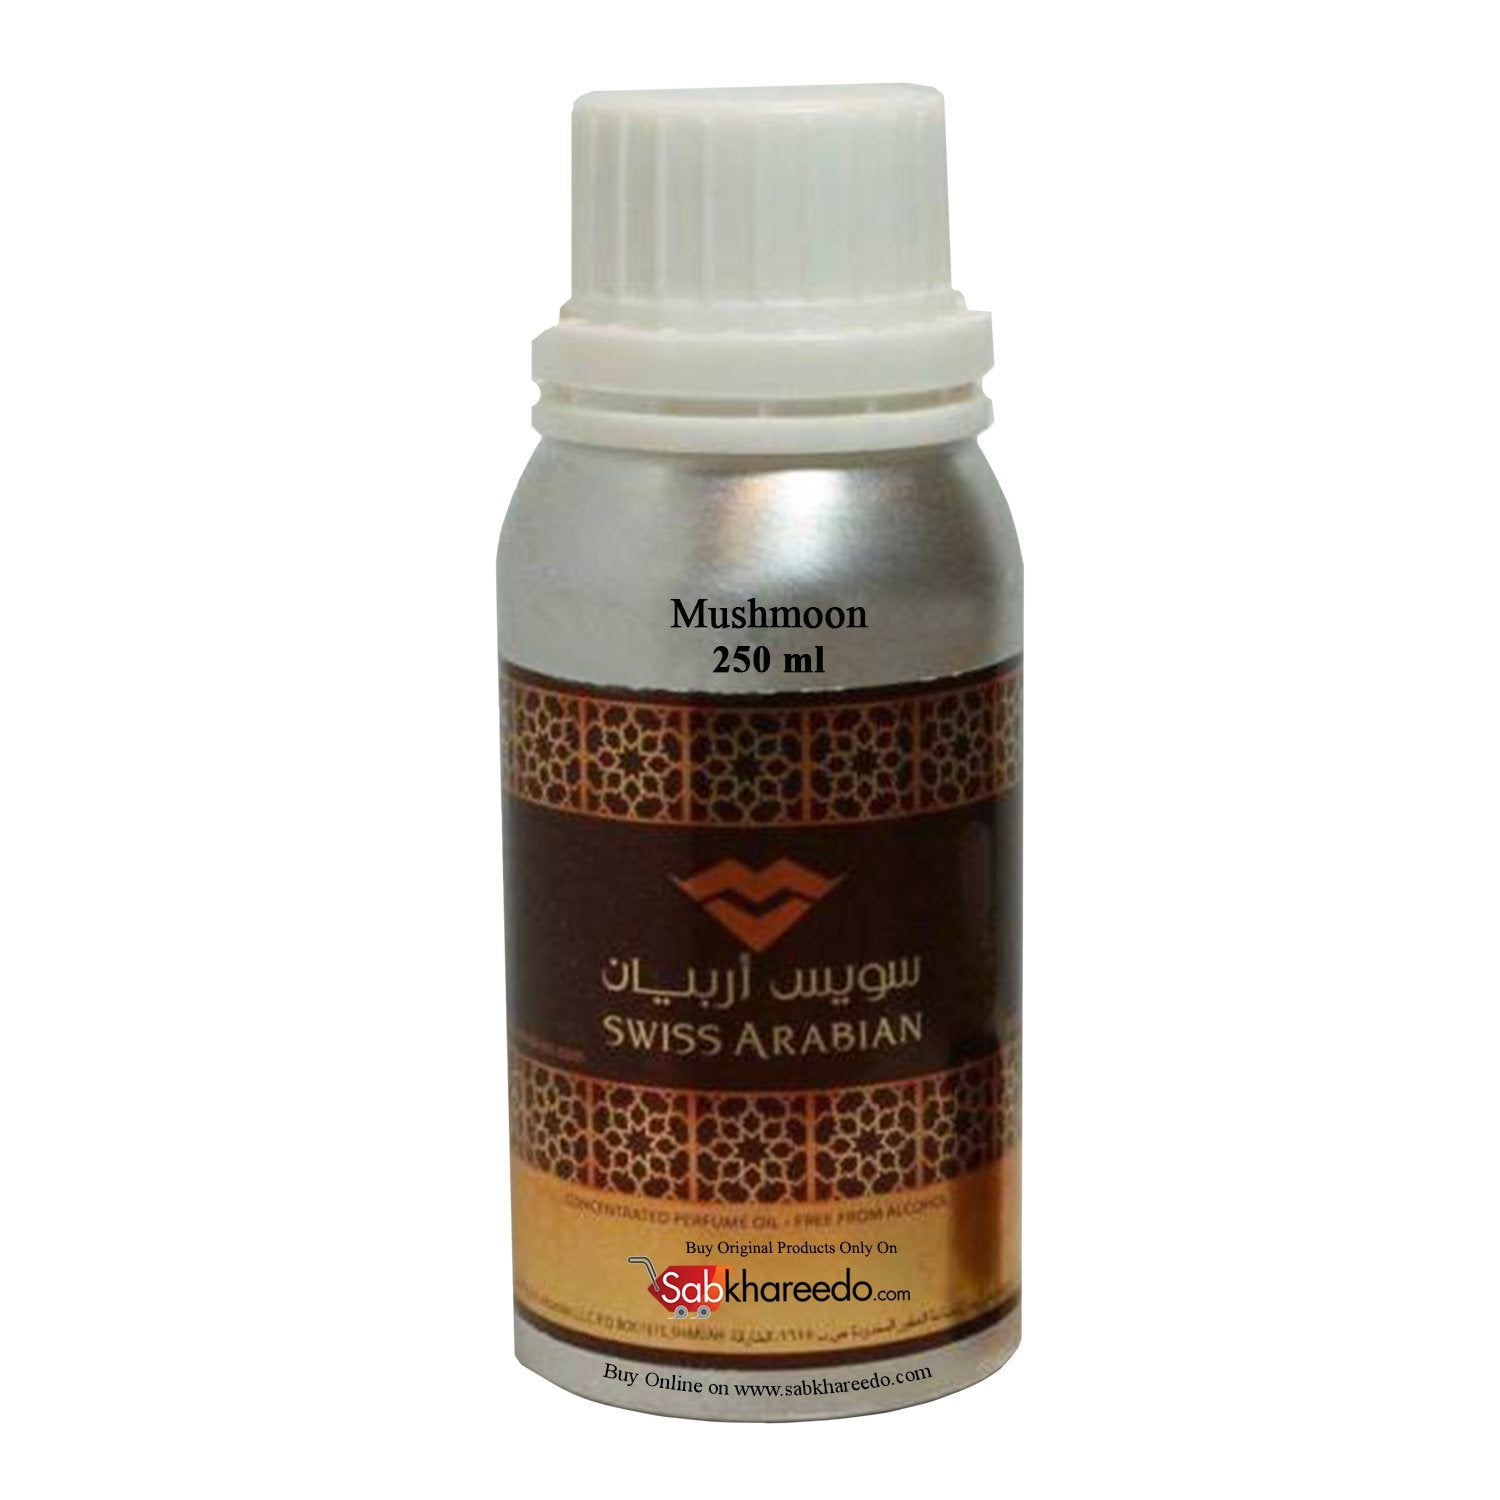 Swiss Arabian Mushmoon Attar - 250ml